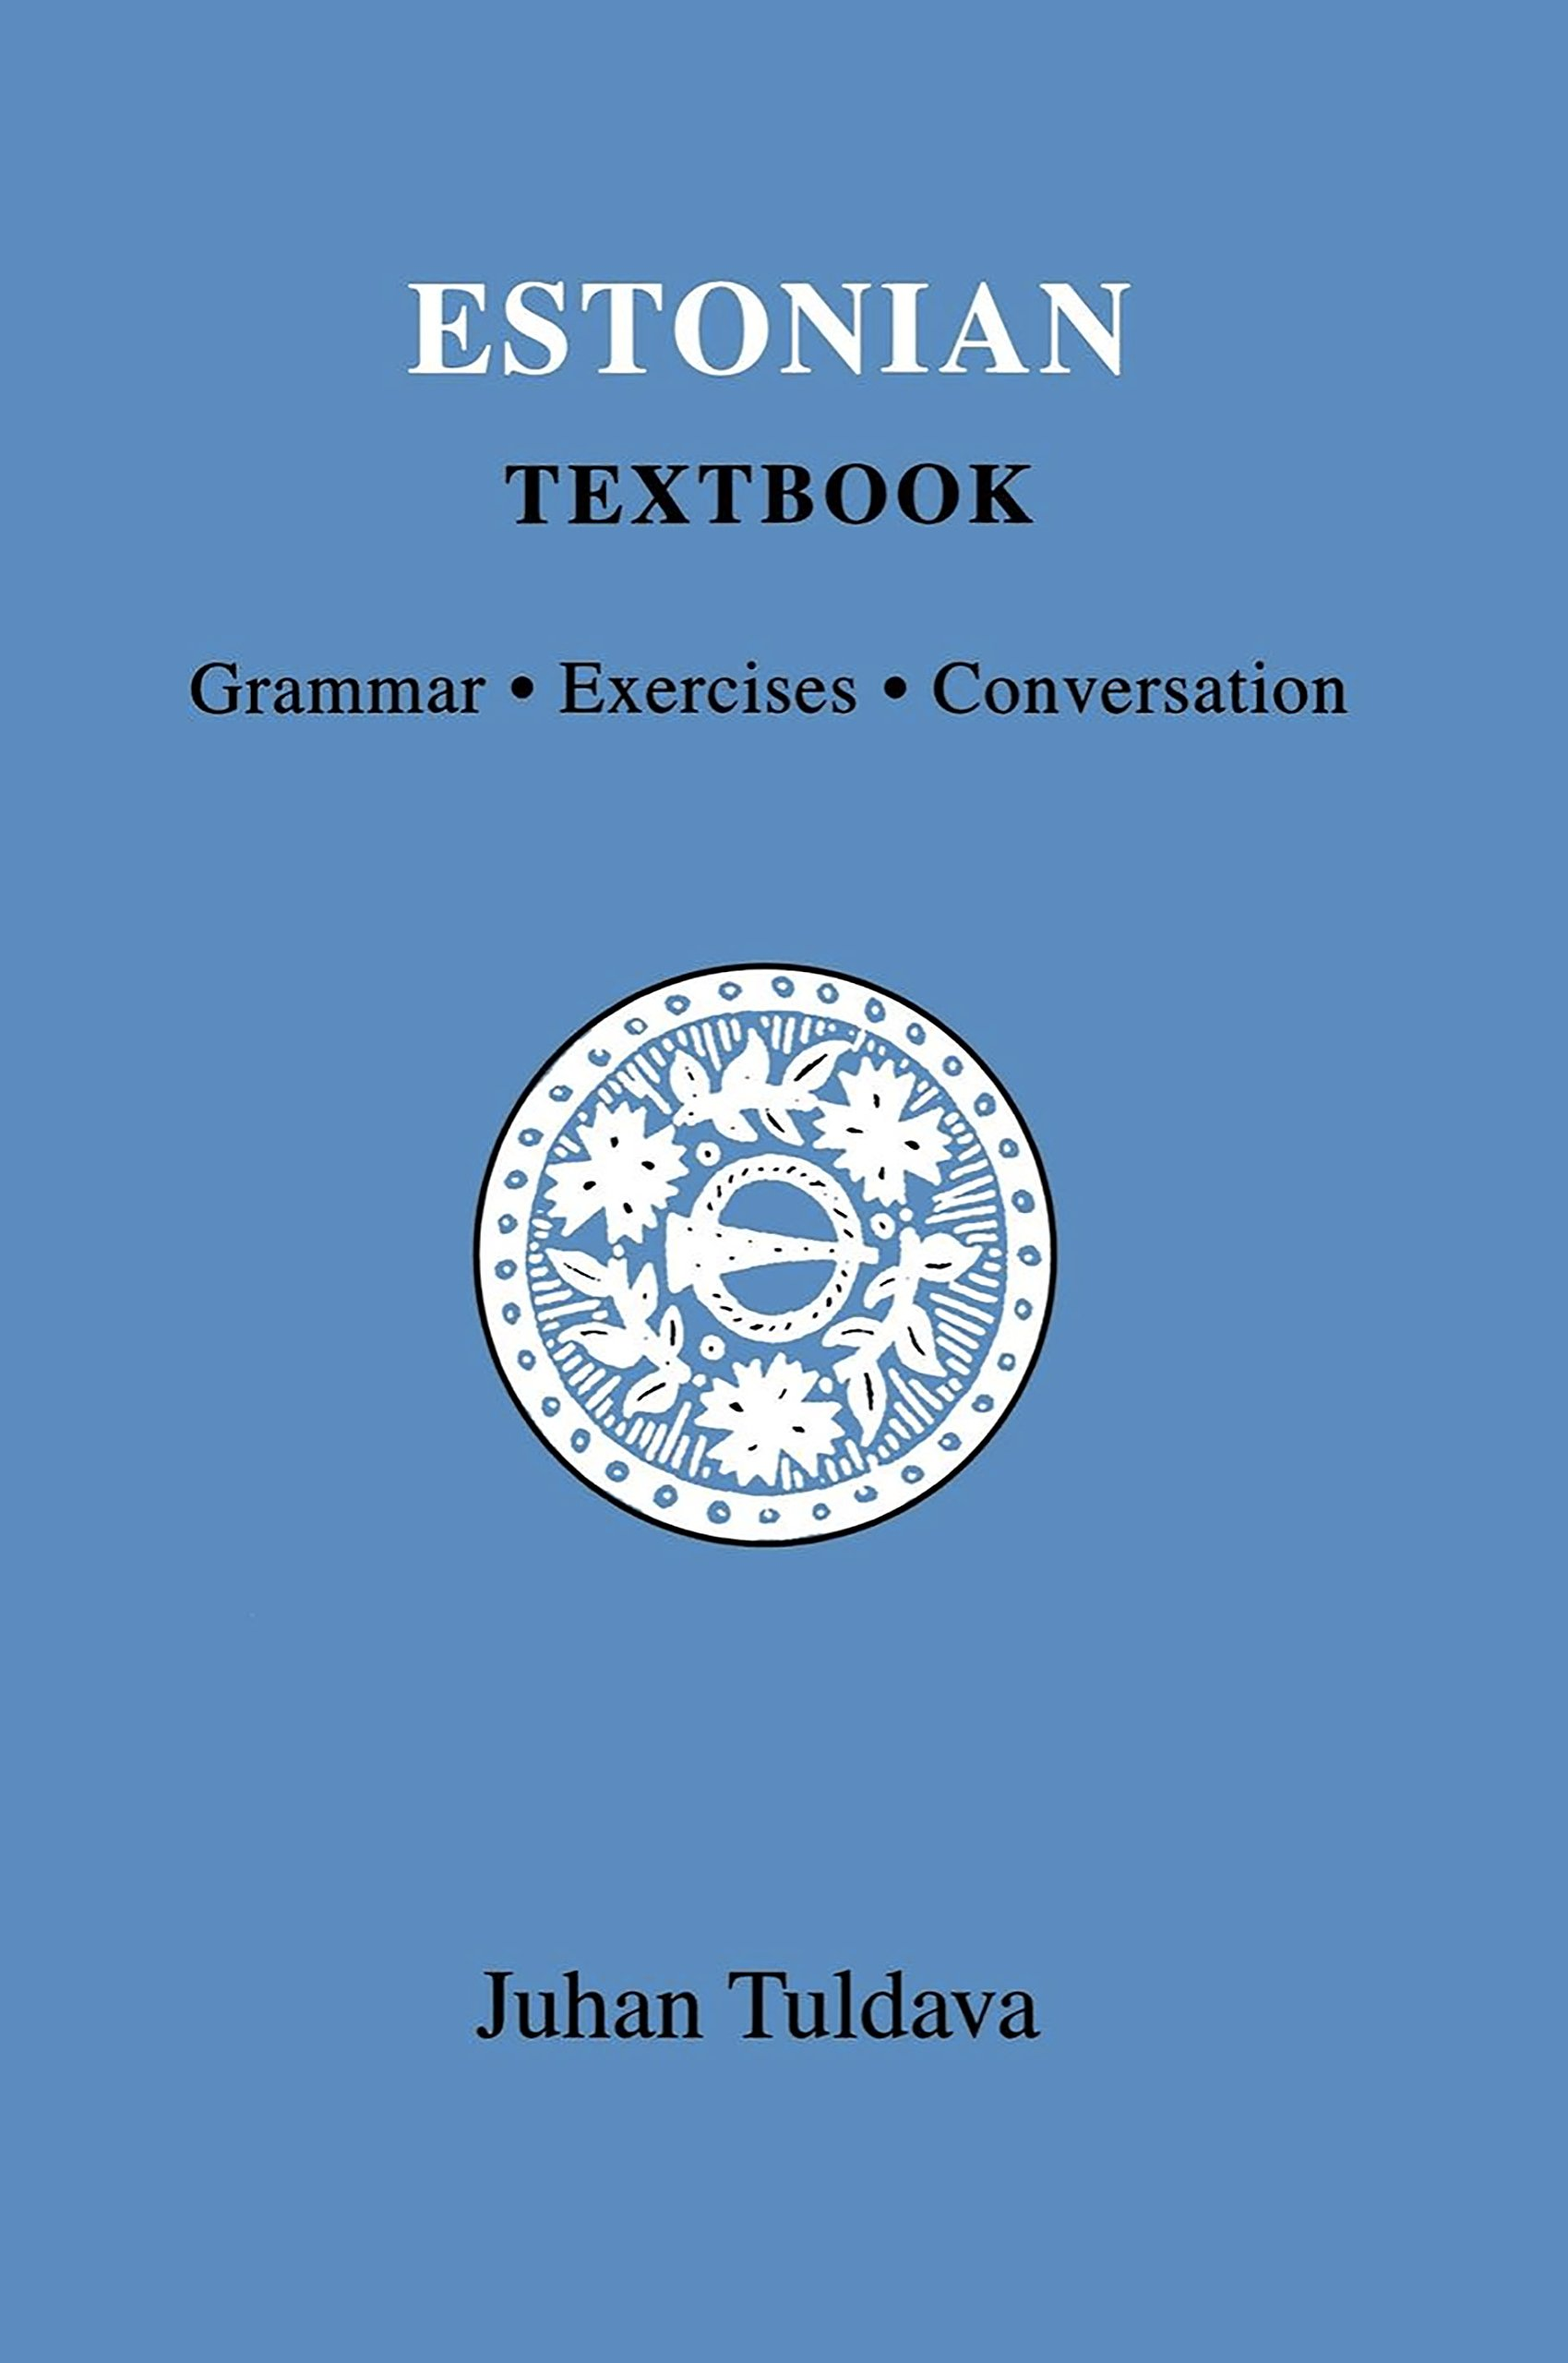 Estonian Textbook: Grammar  Exercises  Conversation: Juhan Tuldava, Ain  Haas: 9780933070547: Amazon: Books